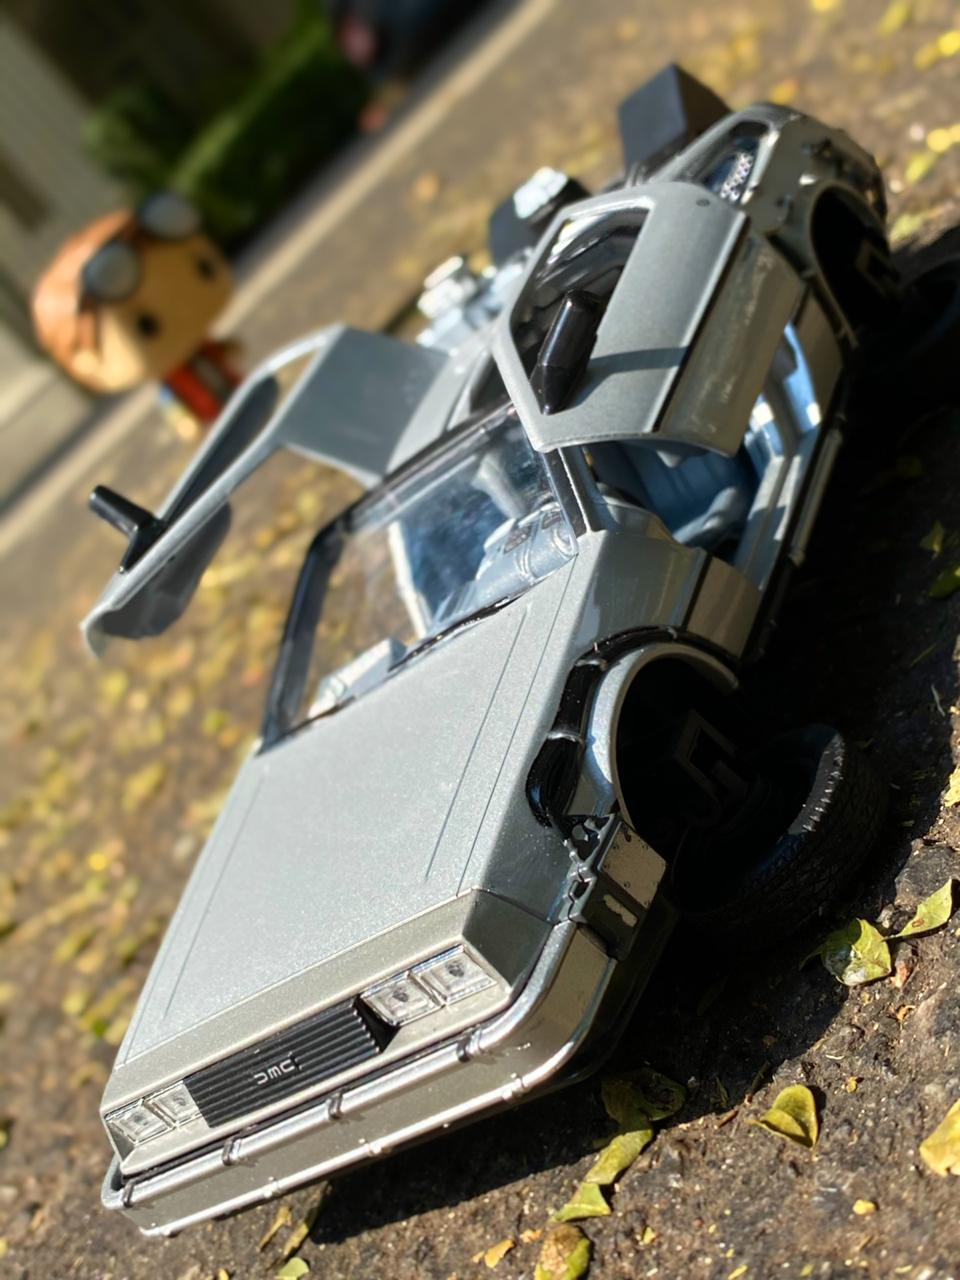 Carro DeLorean Fly Mode: De Volta Para o Futuro 2 (Back to the Future II) Escala 1/24 - Welly